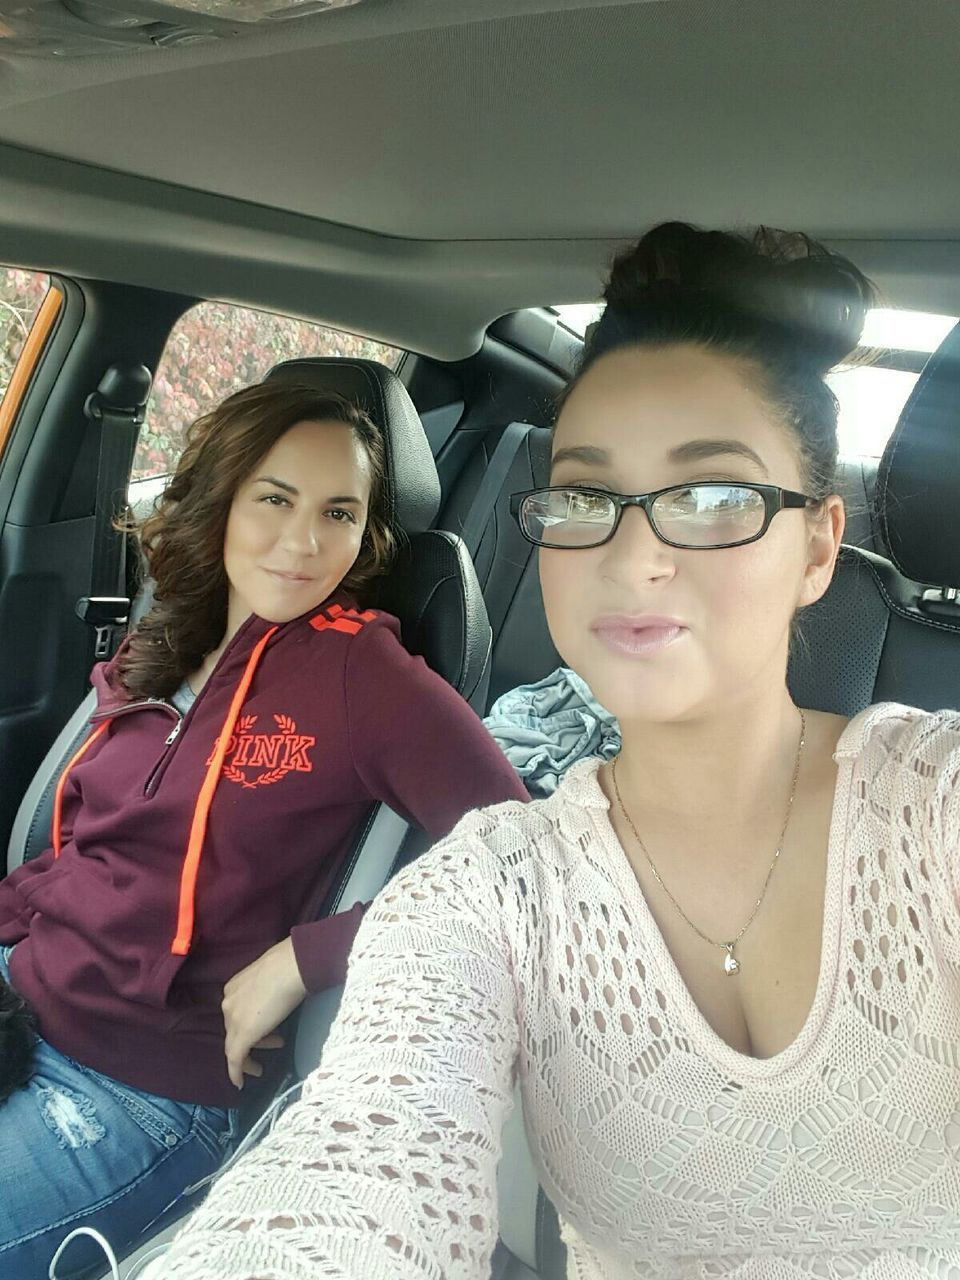 vehicle interior, transportation, young women, young adult, looking at camera, real people, sitting, lifestyles, eyeglasses, portrait, two people, casual clothing, smiling, mode of transport, front view, public transportation, travel, car interior, happiness, leisure activity, togetherness, day, vehicle seat, friendship